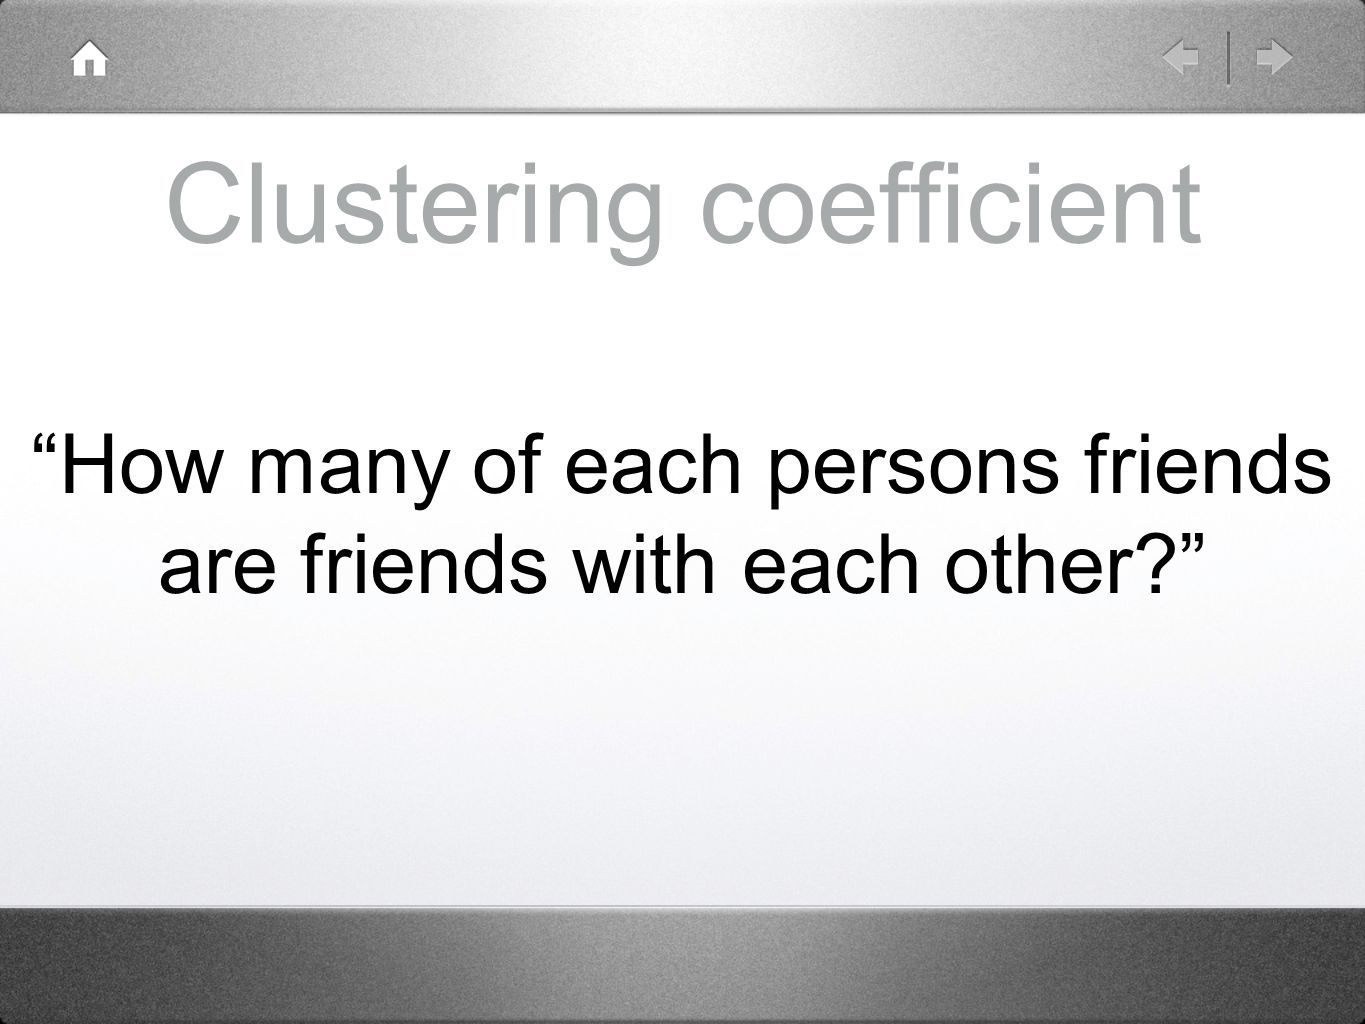 Clustering coefficient How many of each persons friends are friends with each other